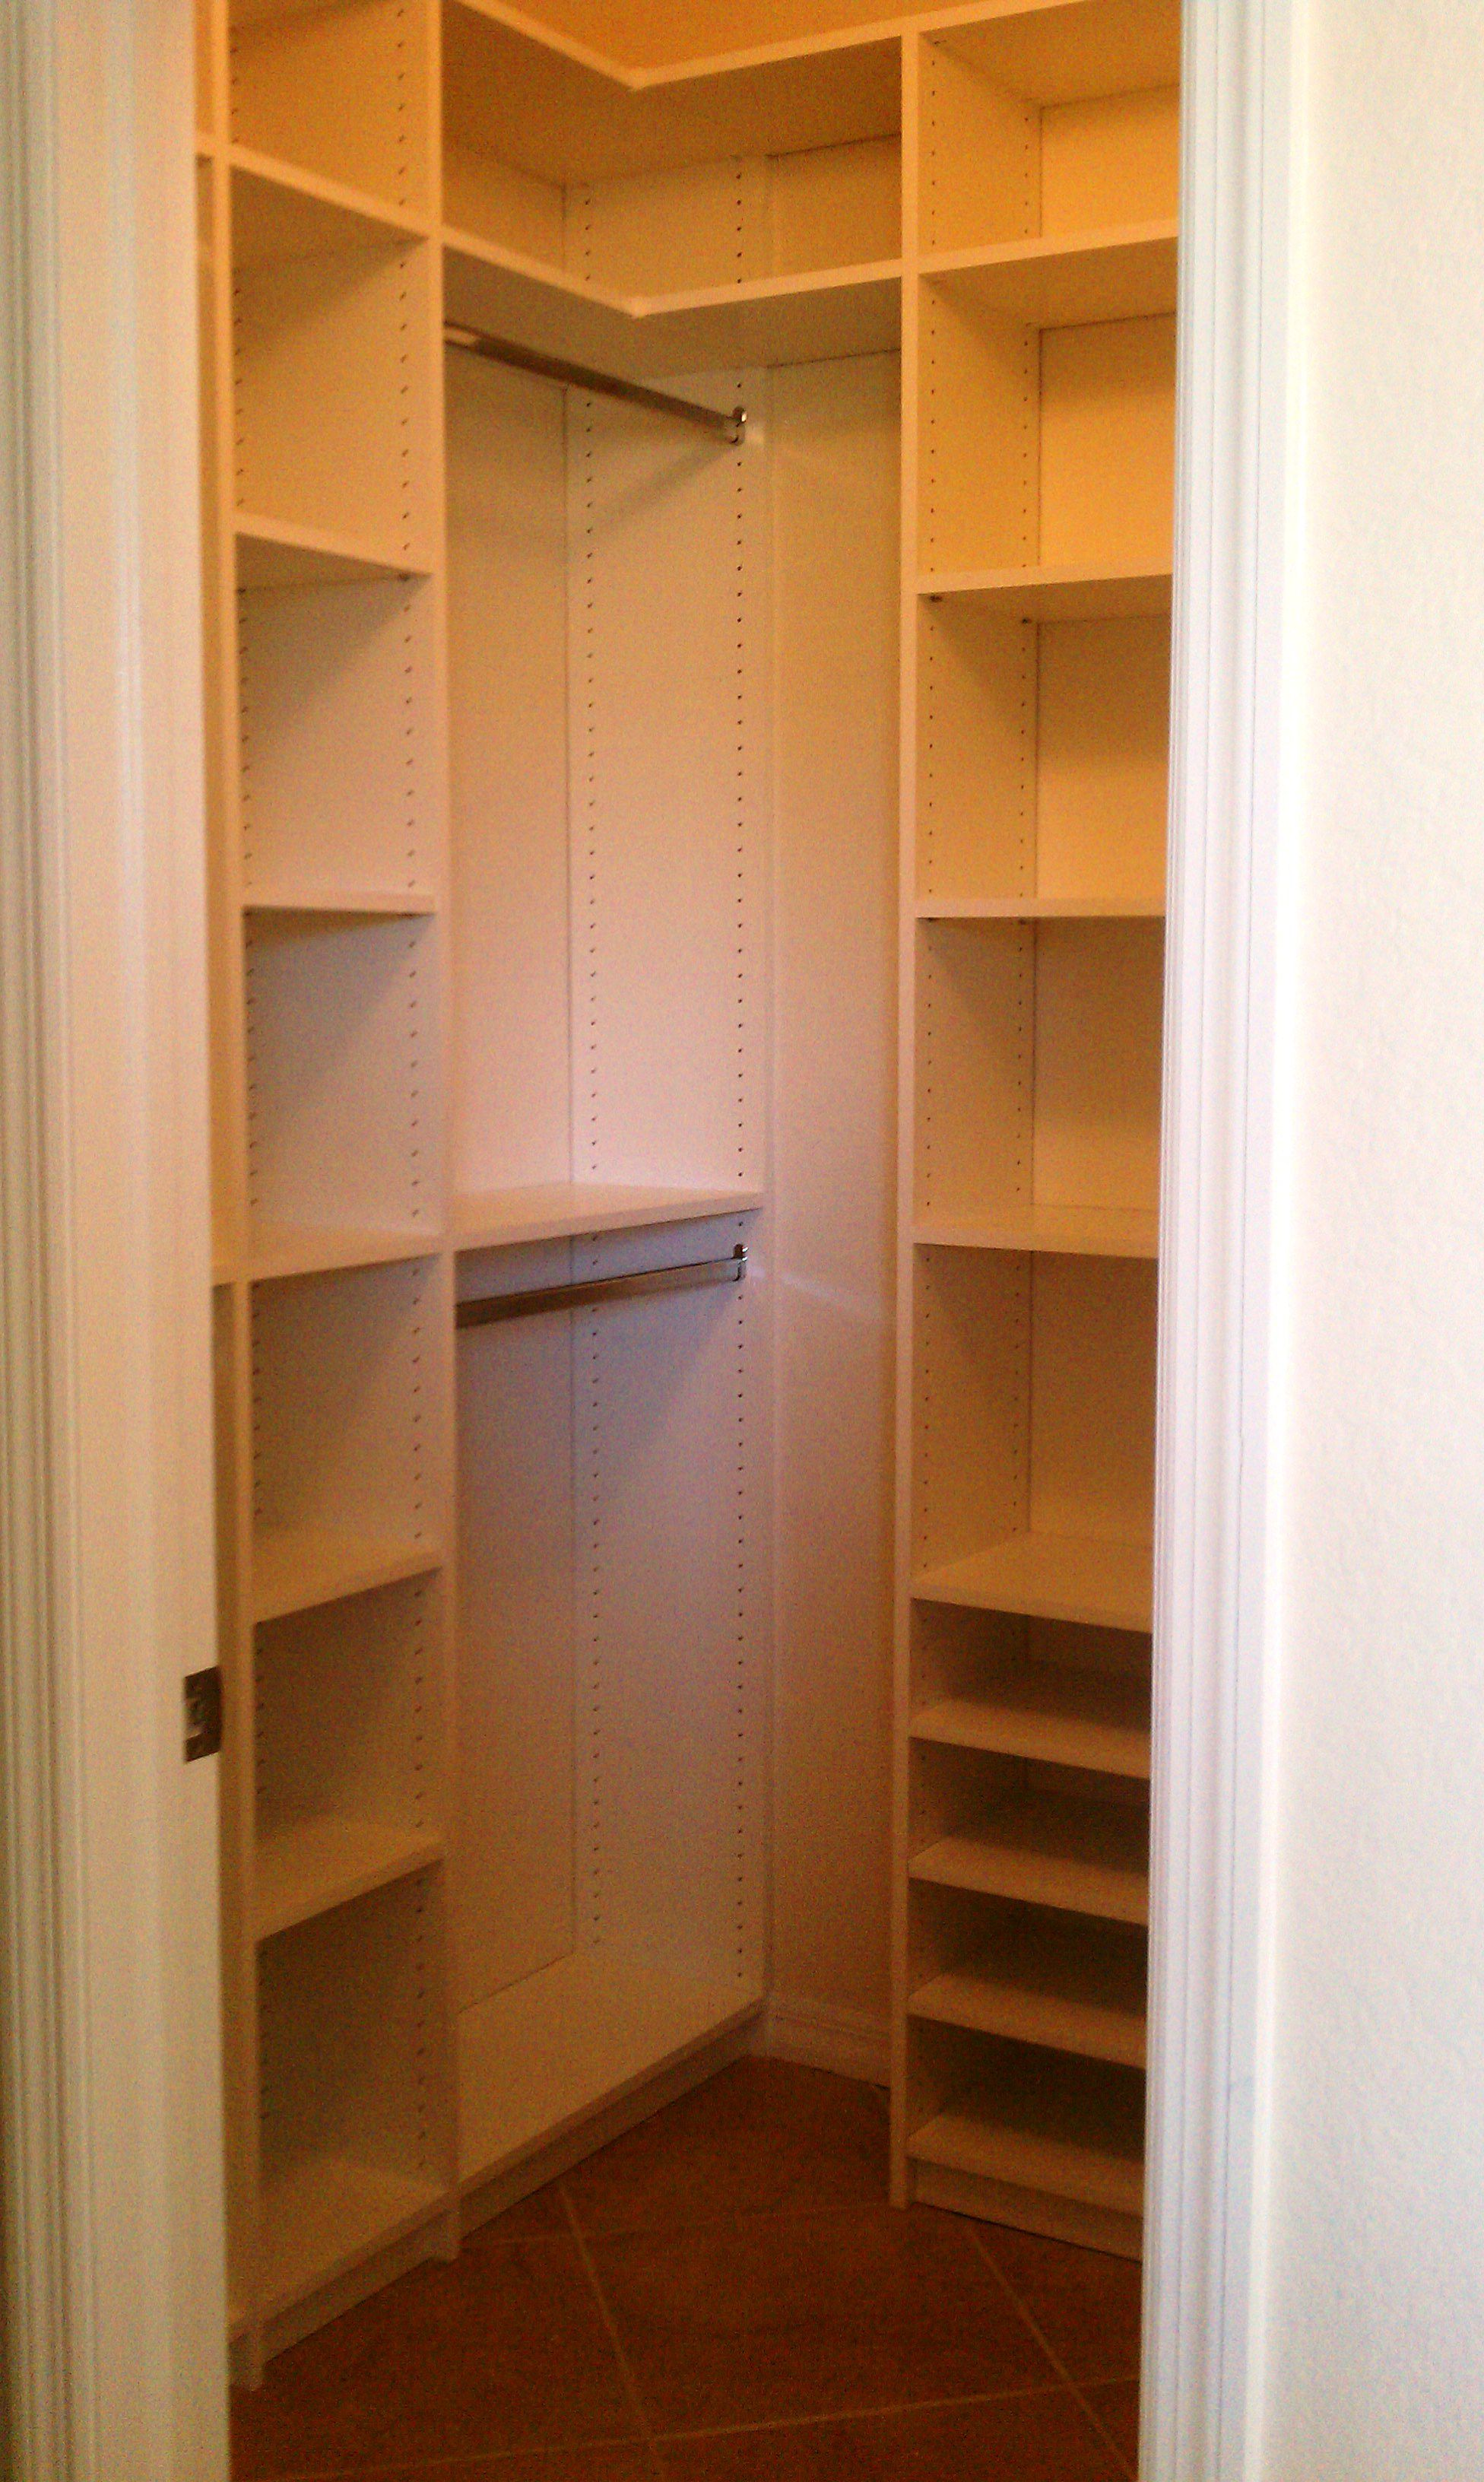 Stunning small closet organization ideas midcityeast Small closet shelving ideas